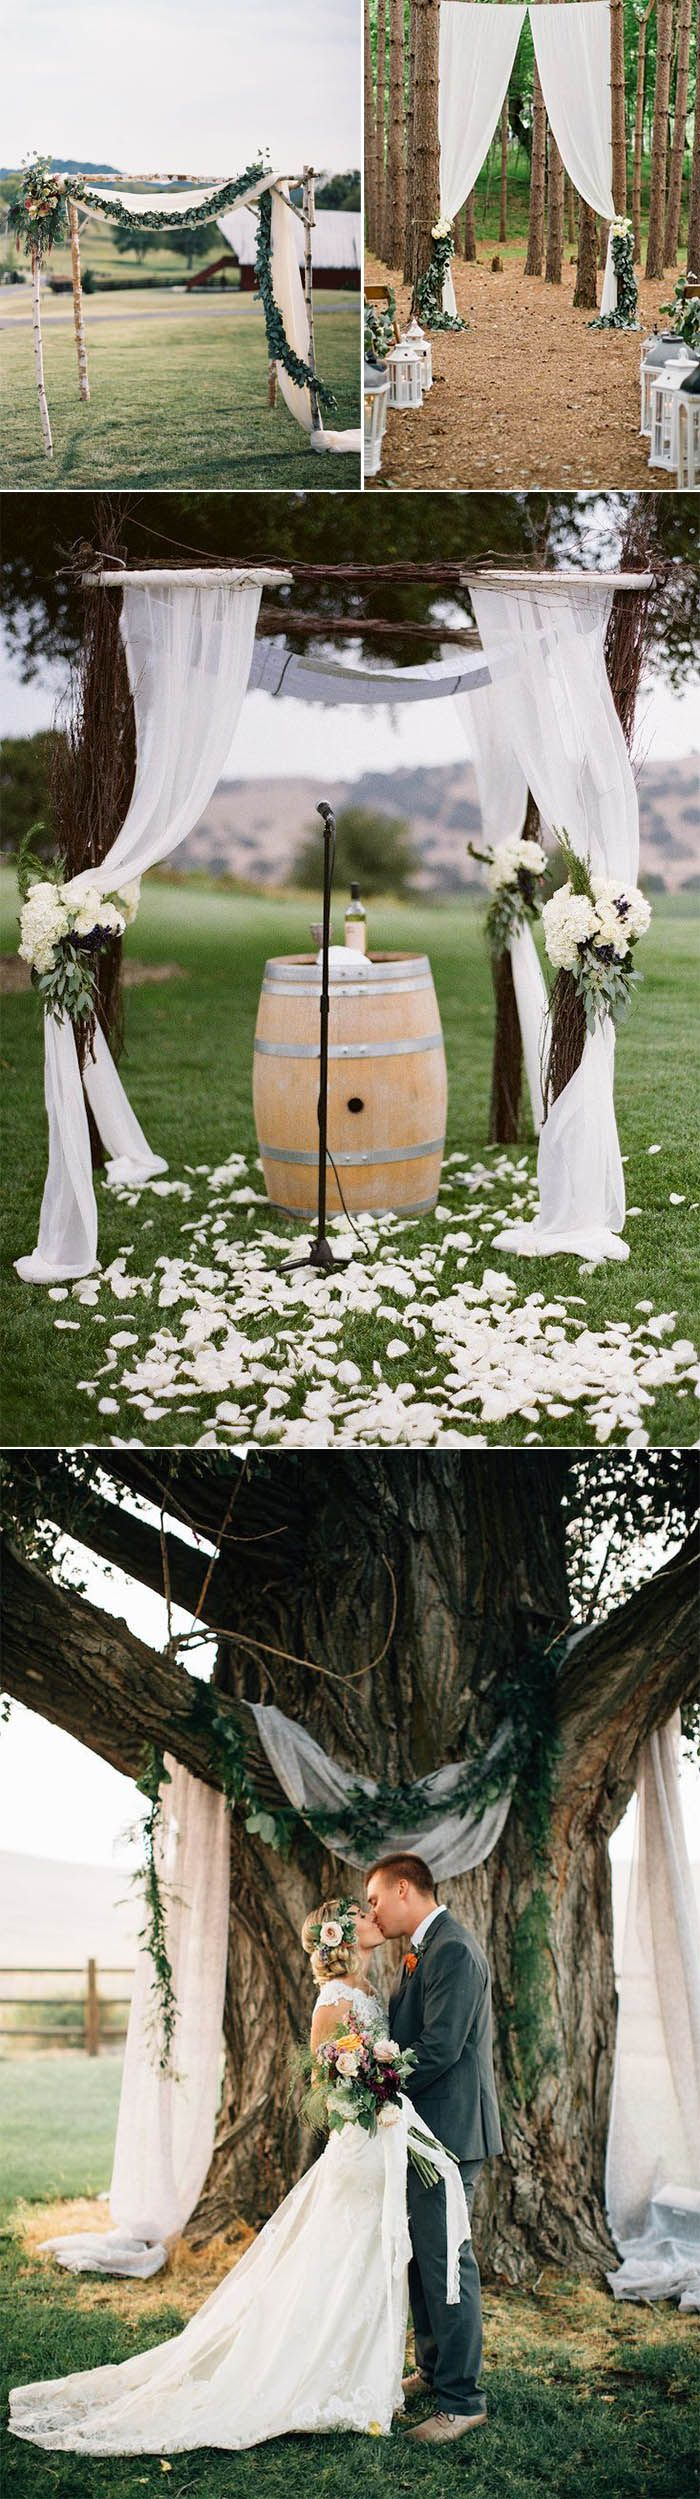 easy and romantic rustic wedding arches ideas